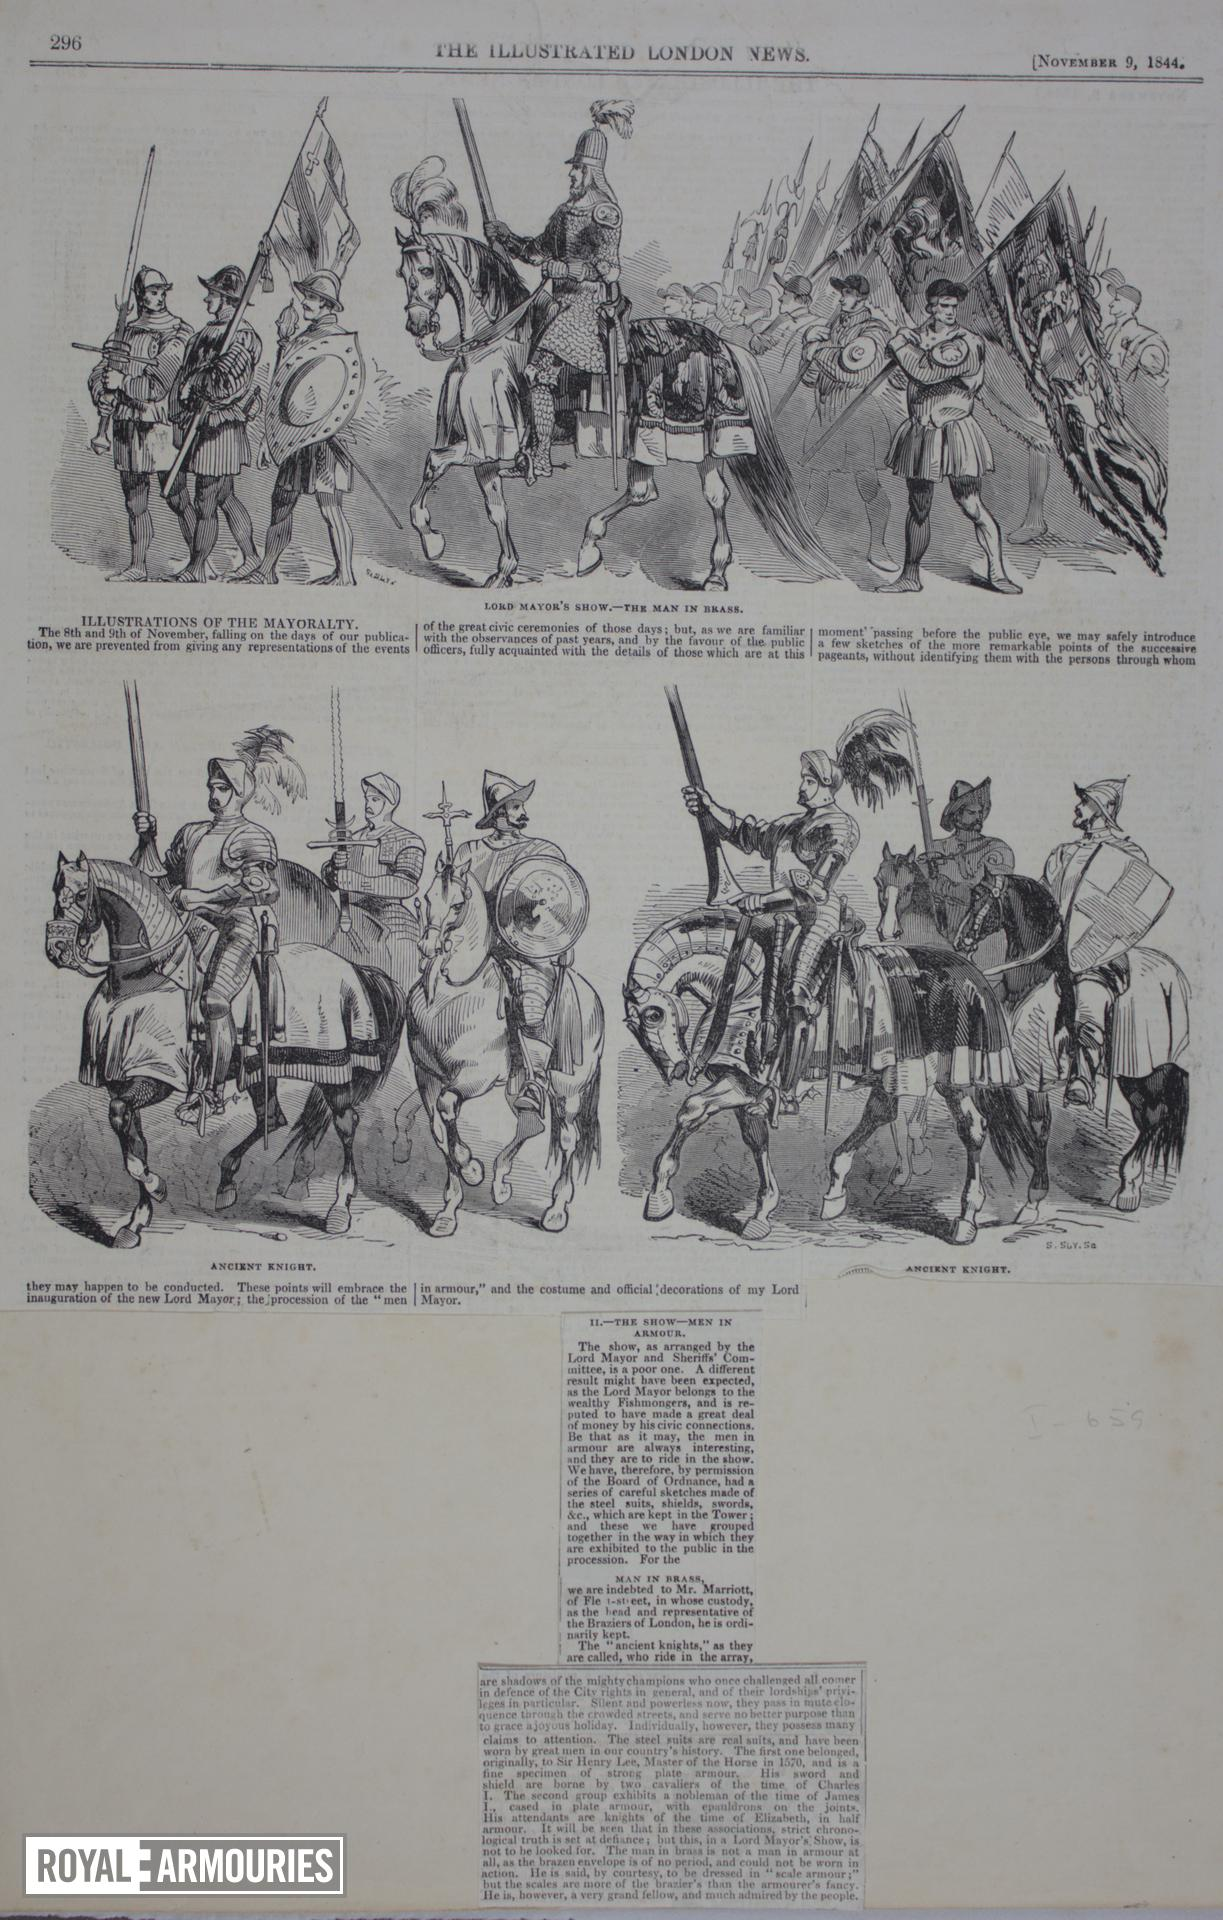 Prints Cuttings from the 'Illustrated London News', November 9, 1844, illustrating the Lord Mayor's Show for that year.